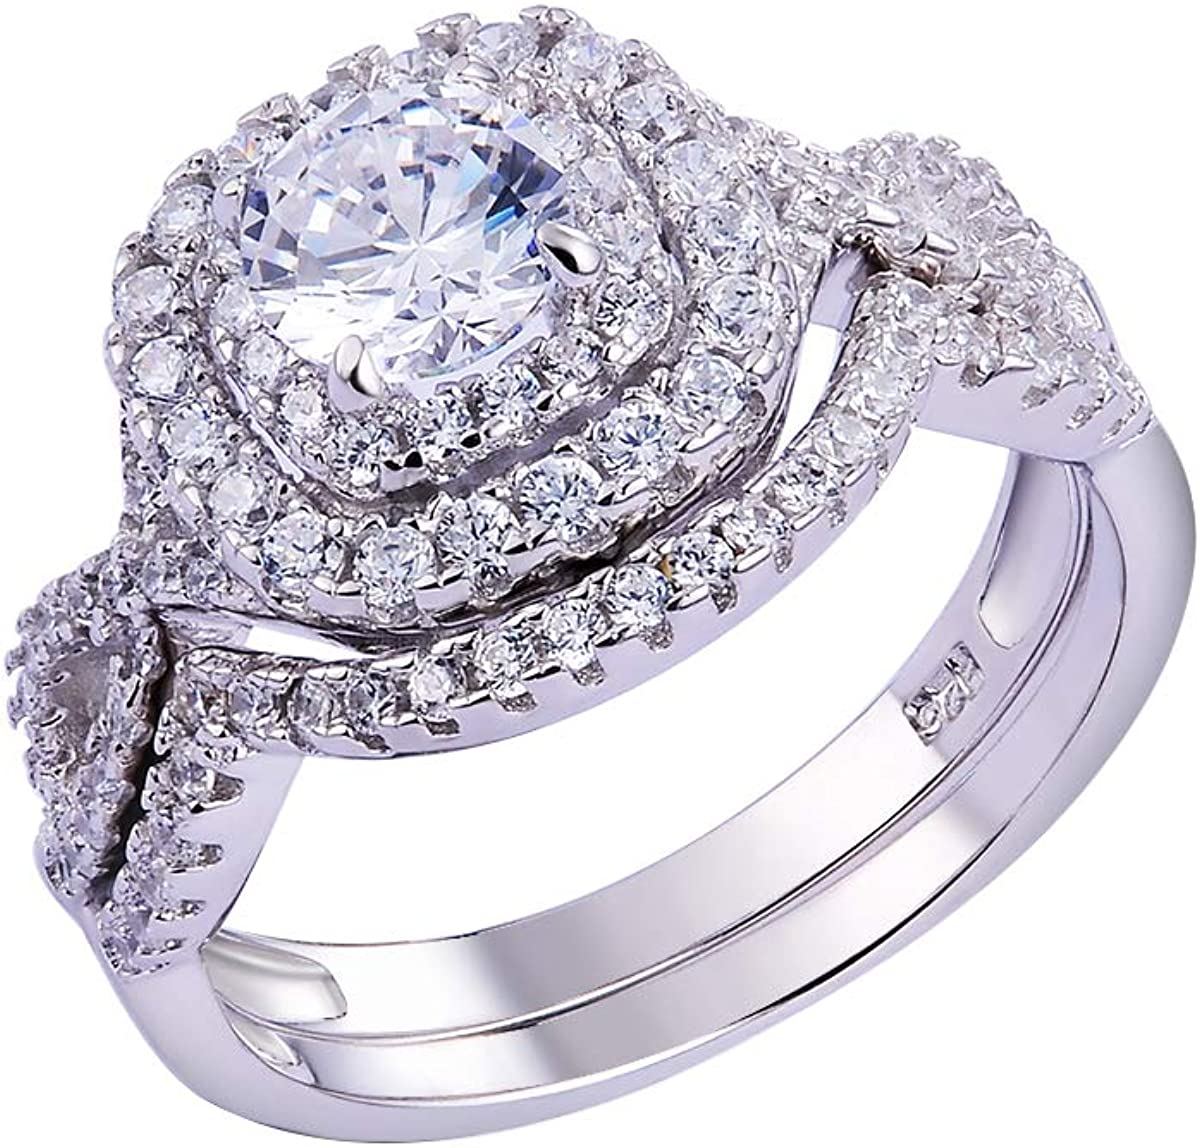 Men/'s Solid 925 Sterling Silver Round Cut 1 Ct AAA CZ Band Wedding Party Ring